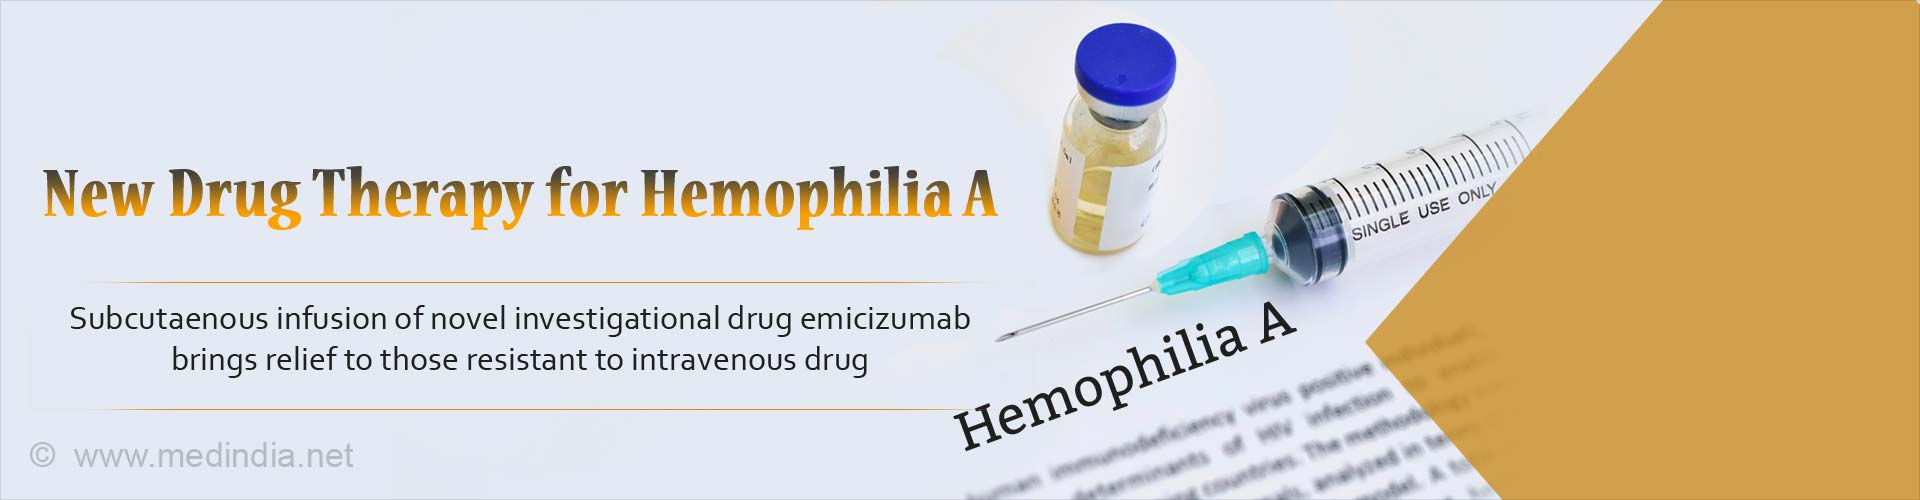 Novel Drug Brings New Hope for Hemophilia A